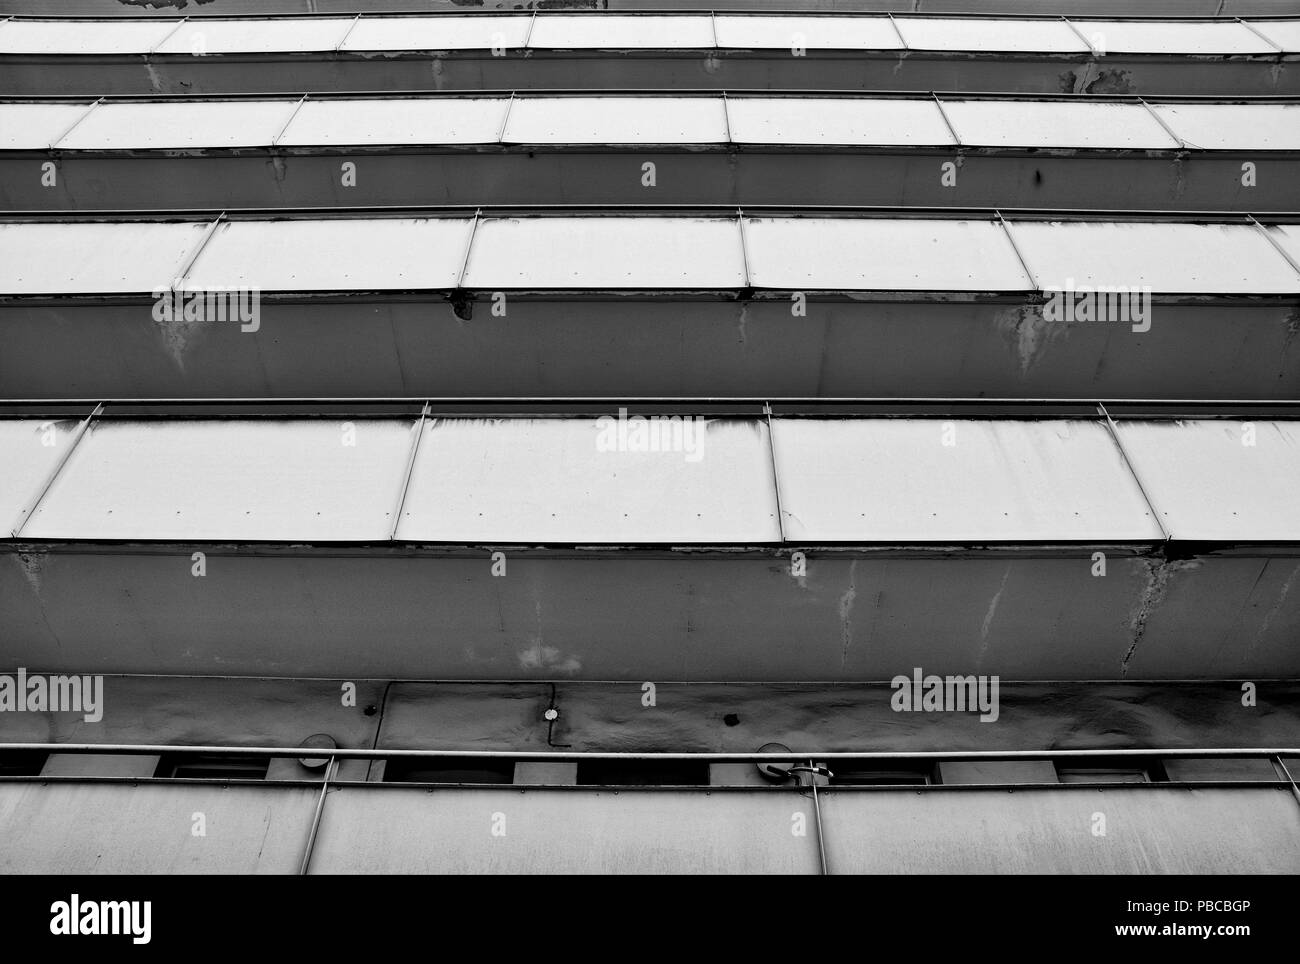 Balconies of a residential building in Berlin Stock Photo